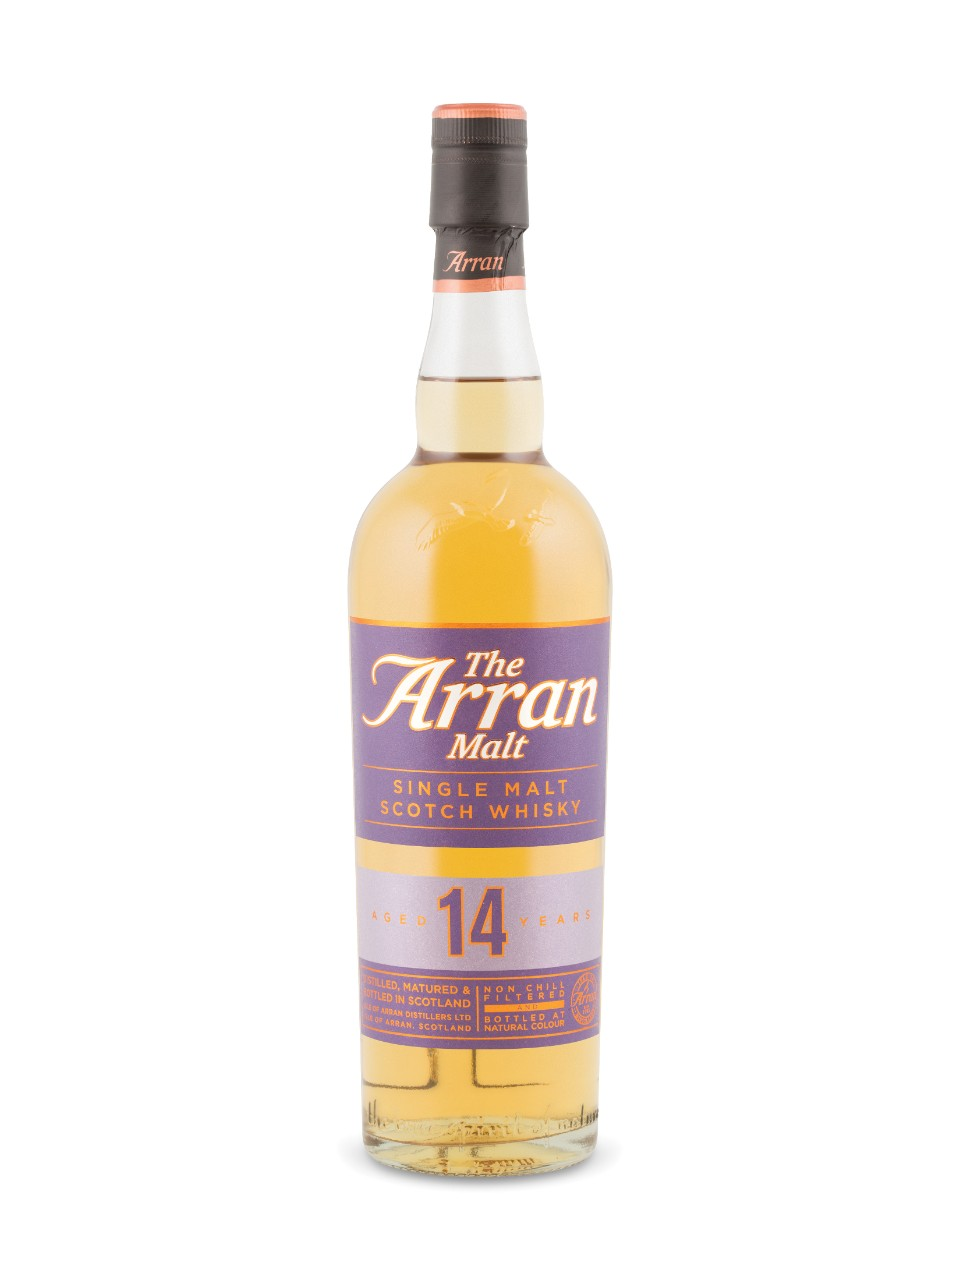 The Arran Malt Isle of Arran 14-Year-Old Single Malt Scotch